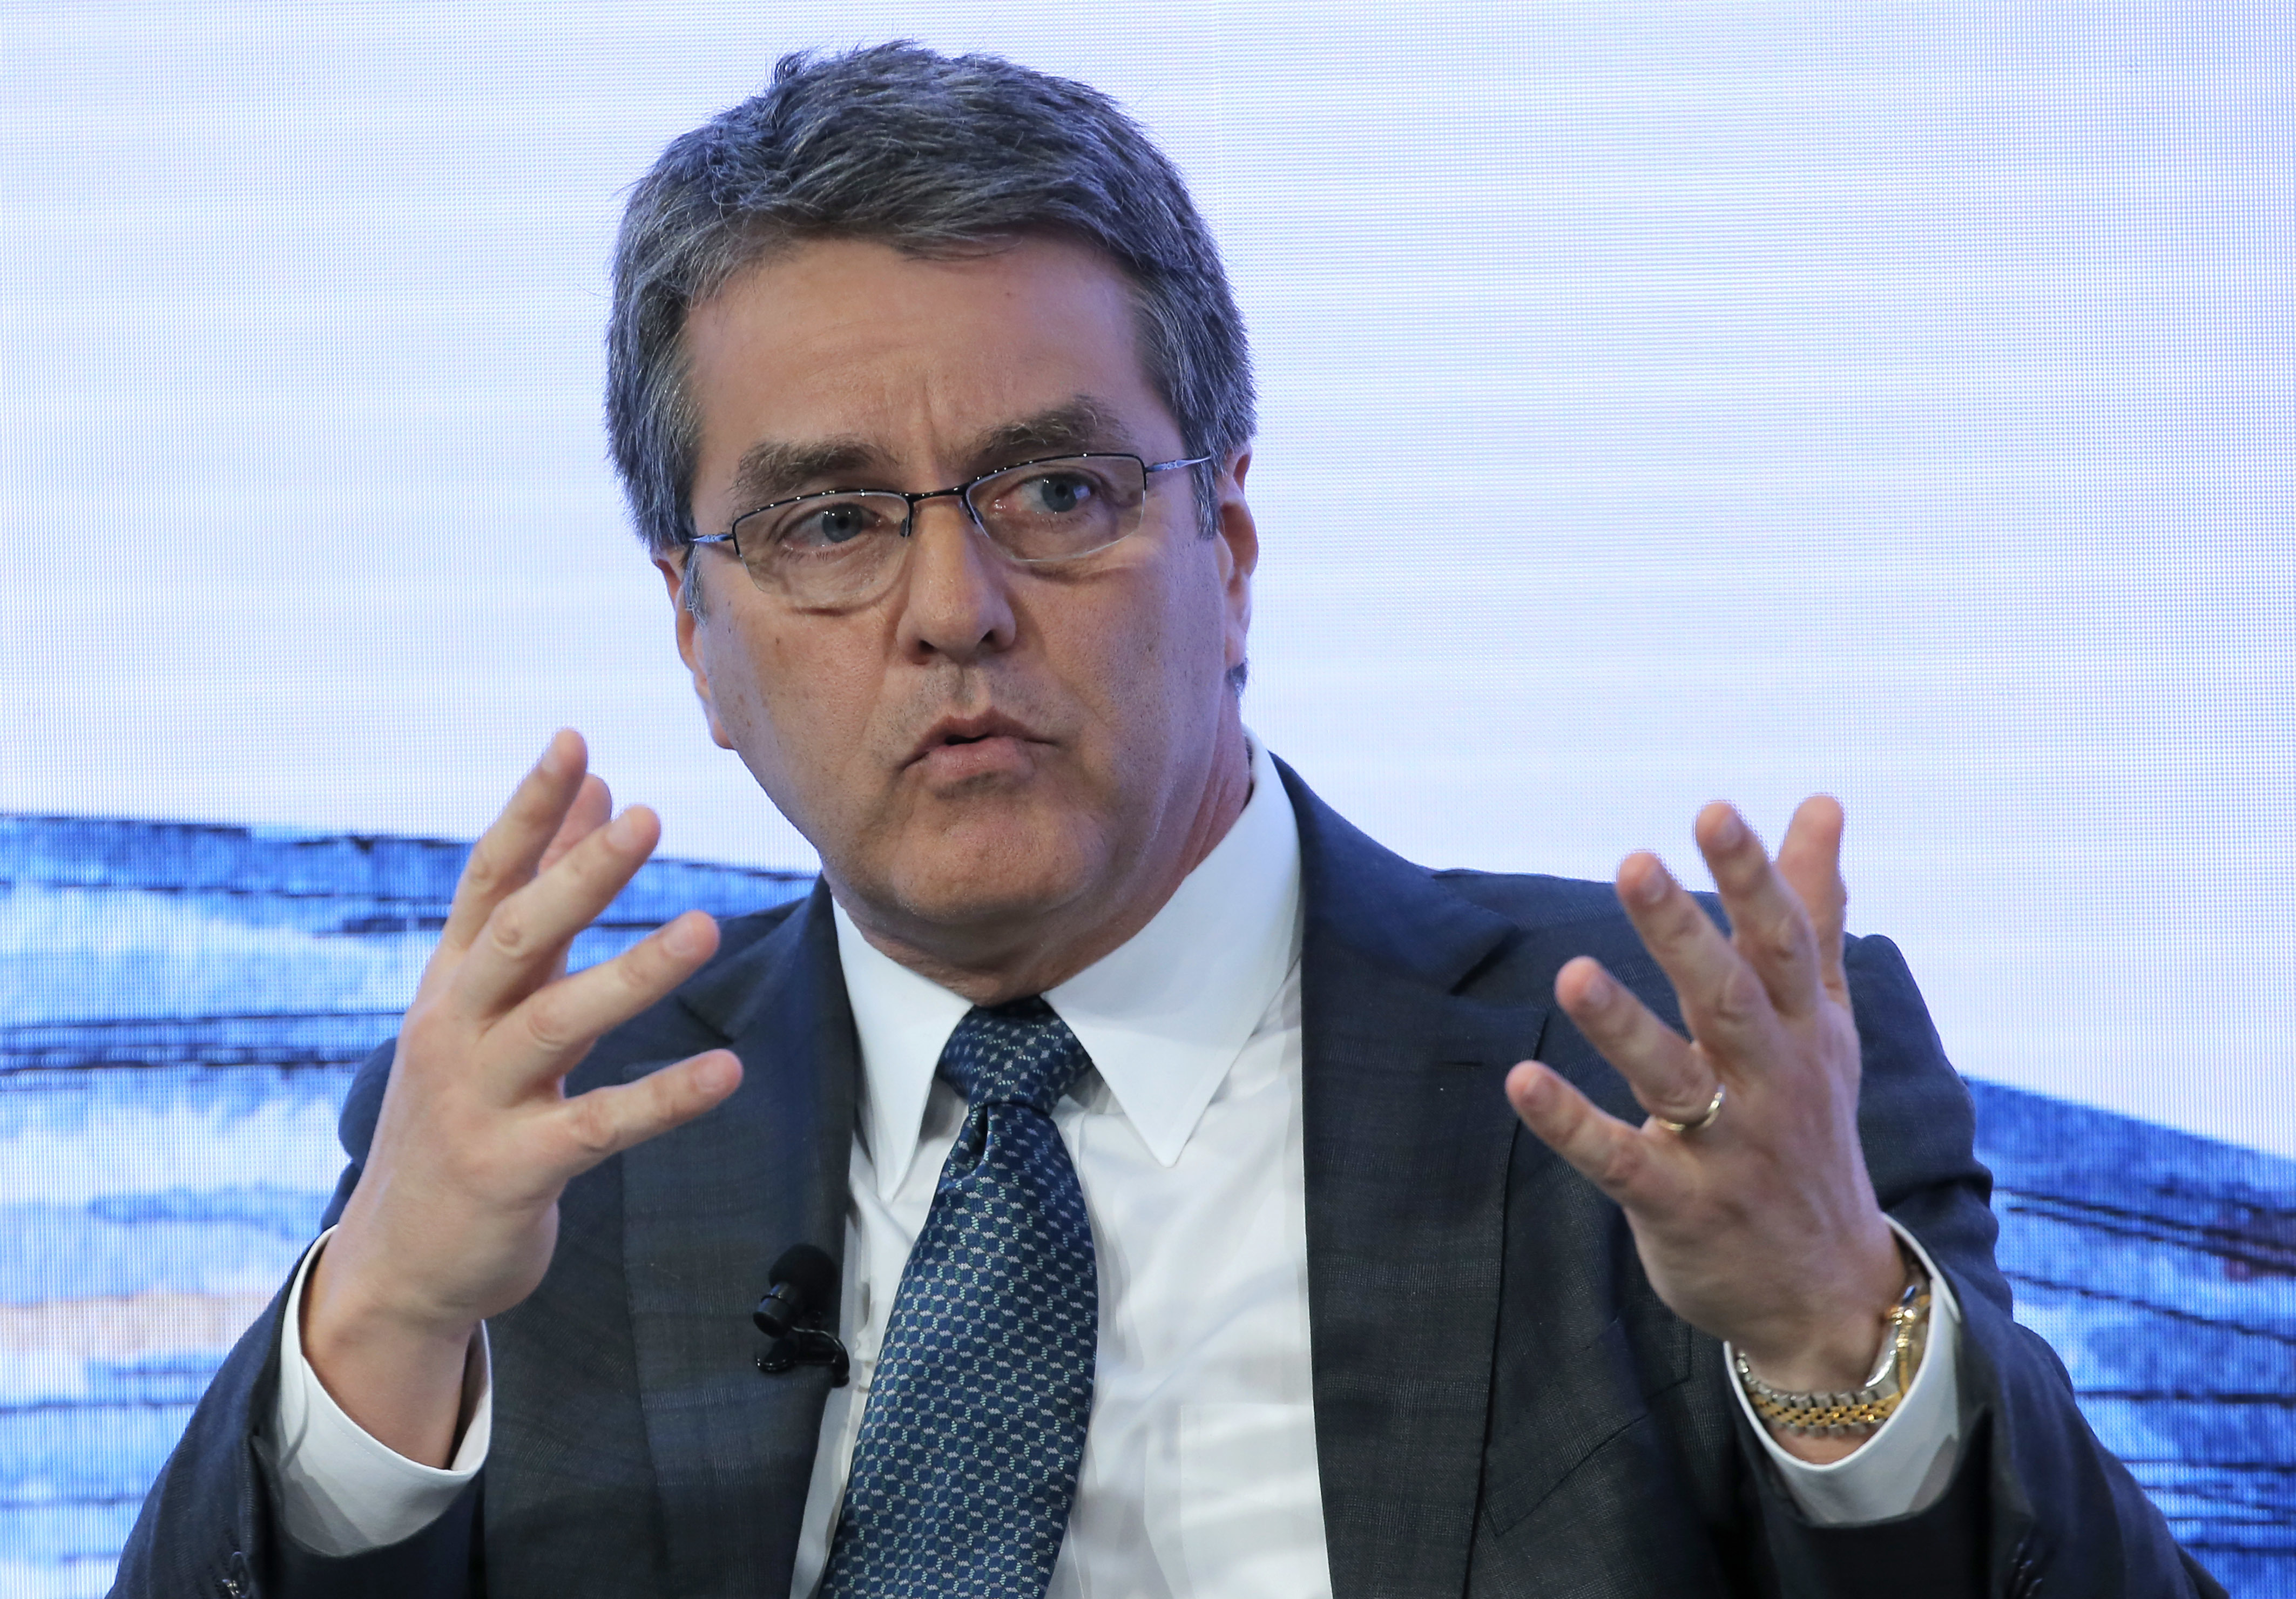 FILE - Roberto Azevedo director general of the World Trade Organization gestures as he speaks on the third day of the annual meeting of the World Economic Forum in Davos, Switzerland.